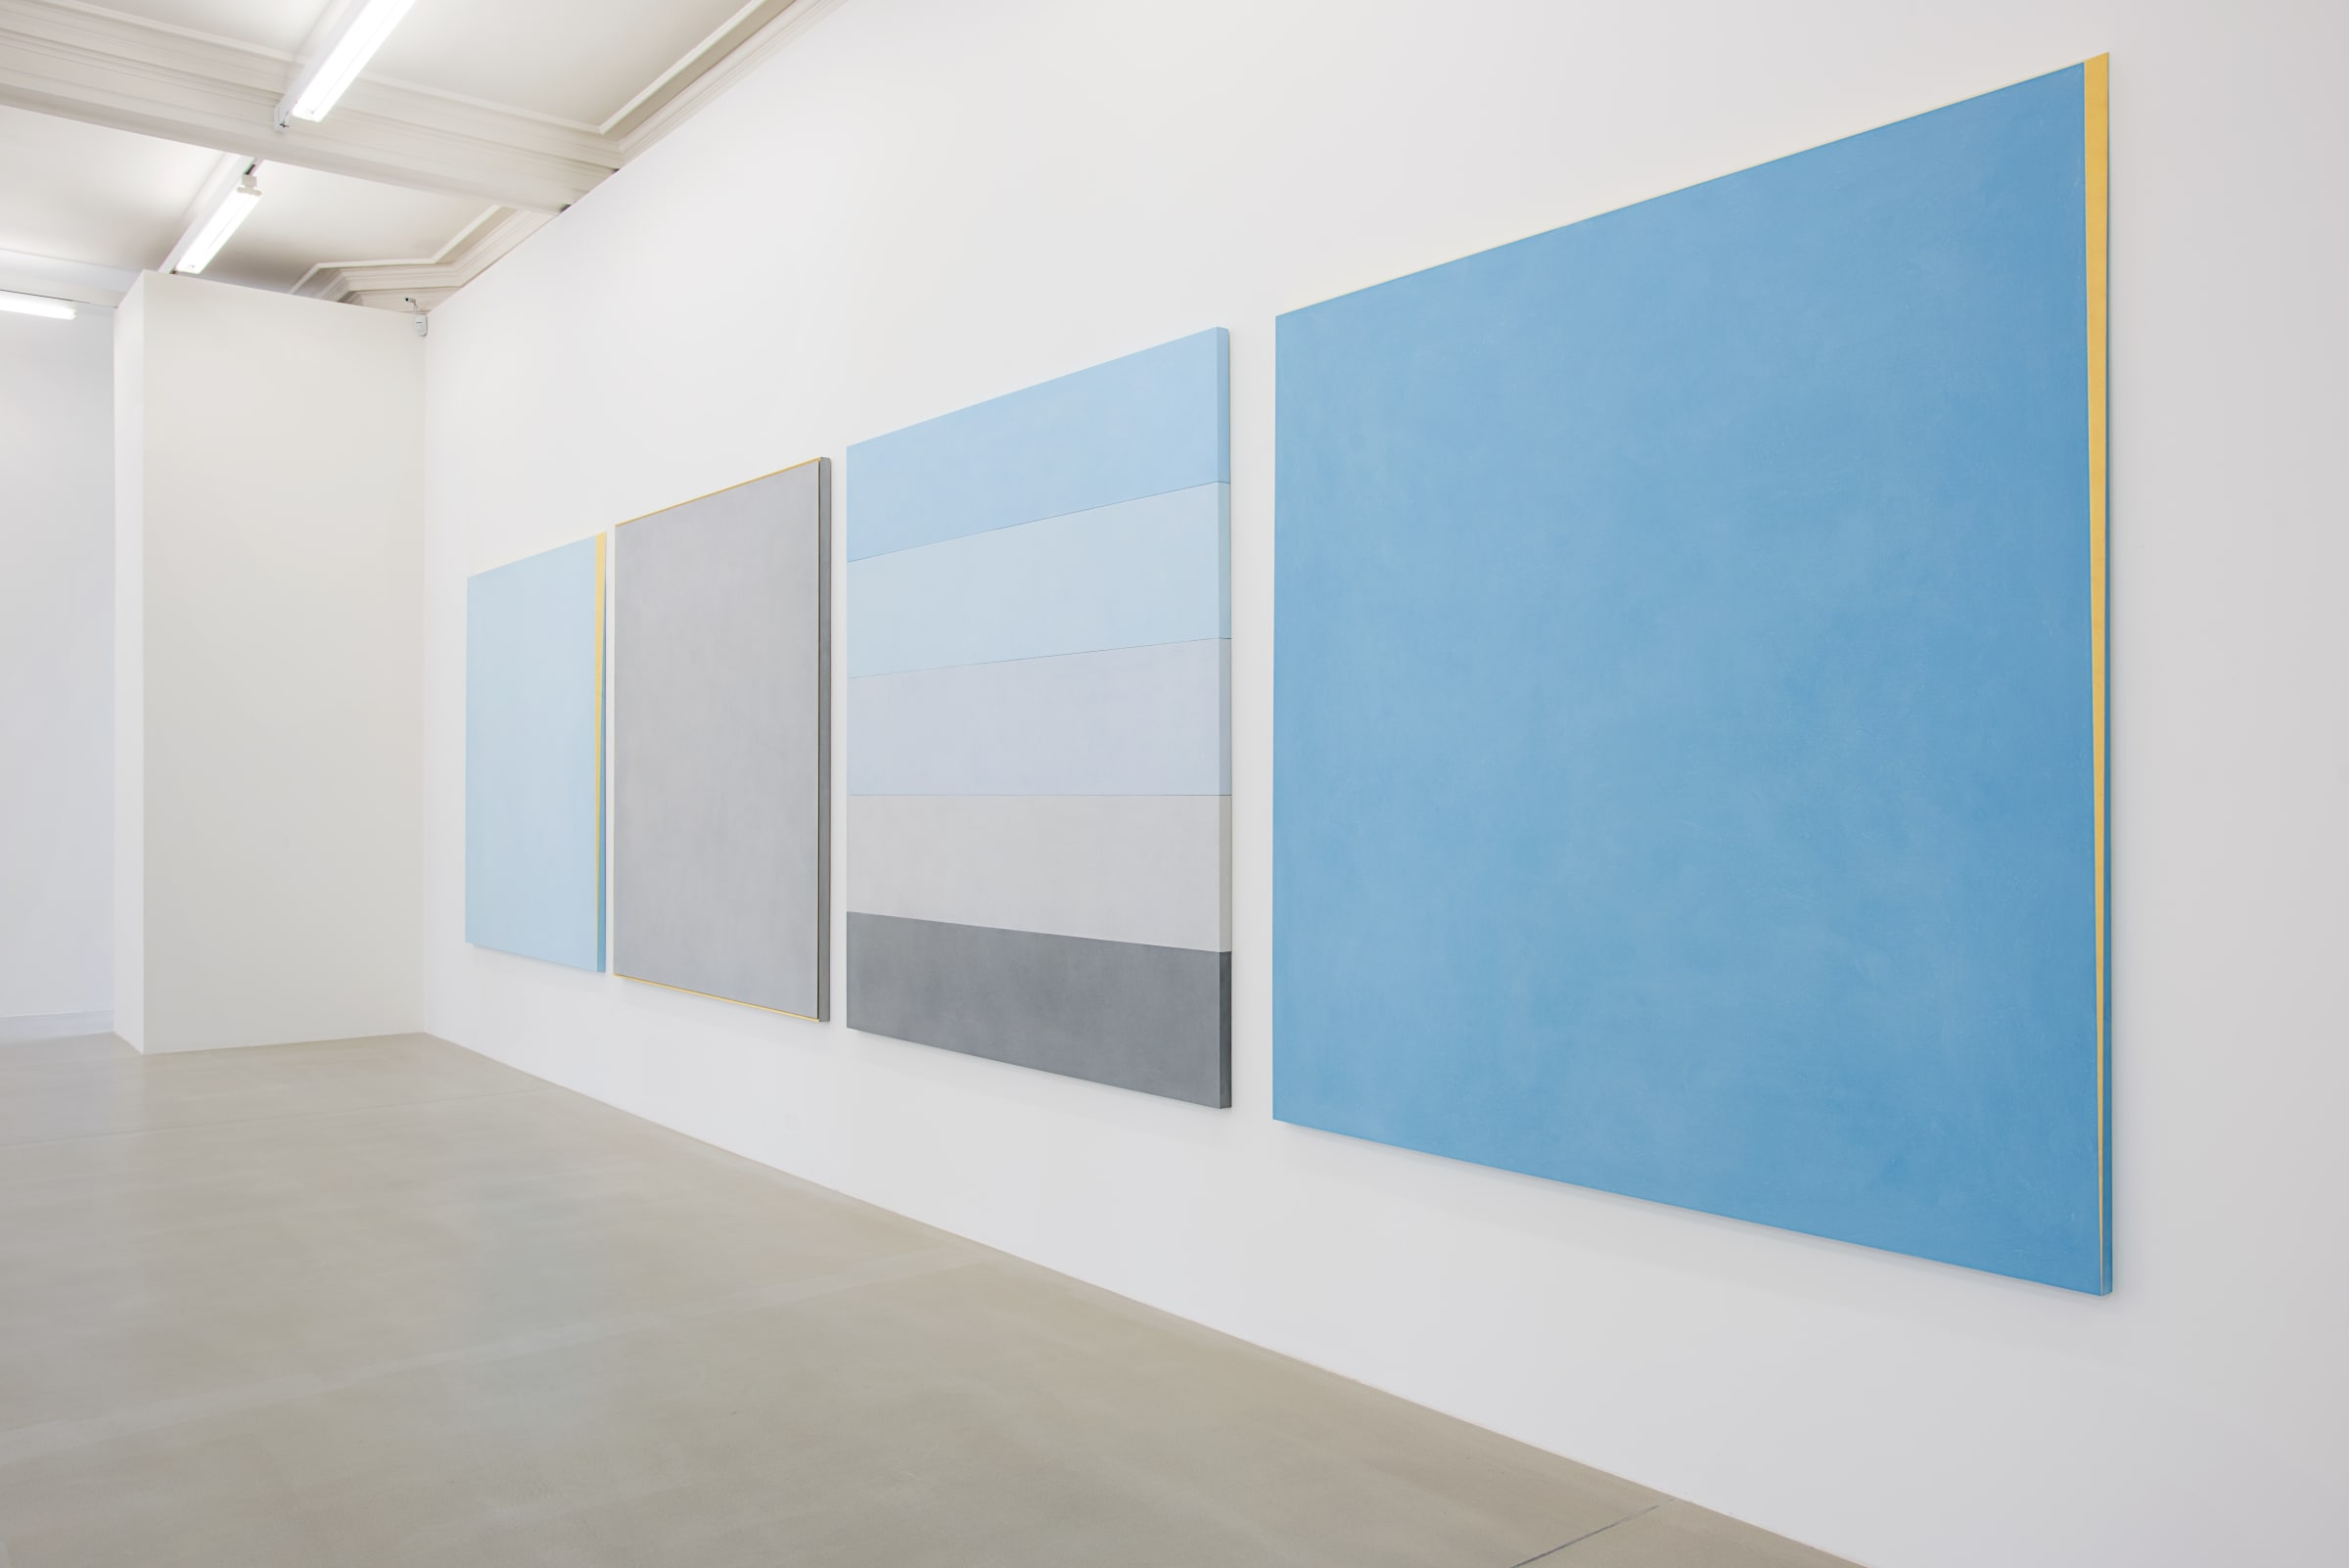 Four paintings hang on a white wall. From the left: solid light blue with gold framing, solid light gray with gold framing, 5 strips: light blue, lighter blue, light grey, grey,  darker grey, and finally, sky blue with gold framing.